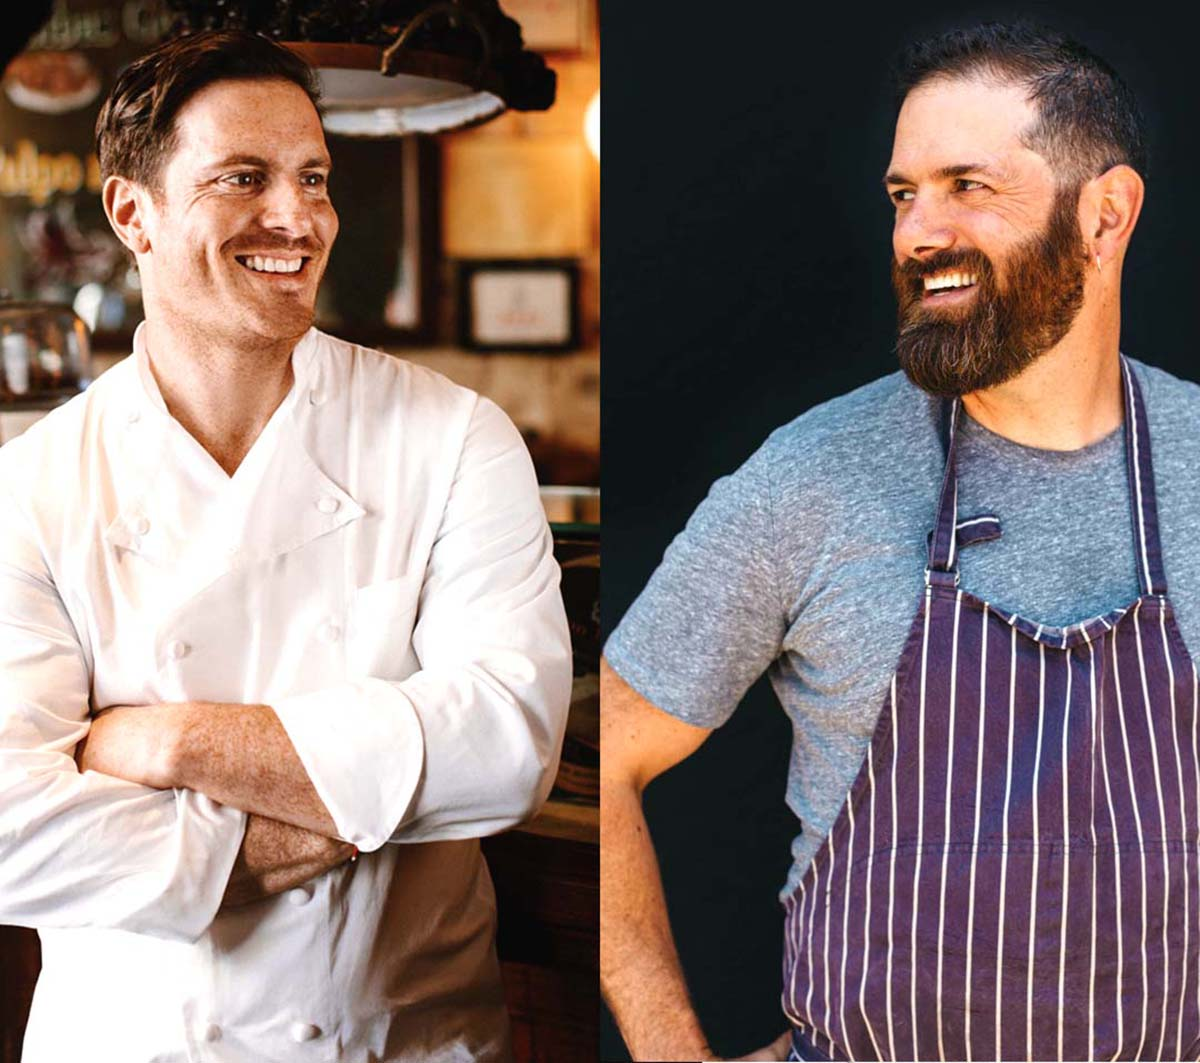 Chefs Seamus Mullen (Left) and Tony Maws